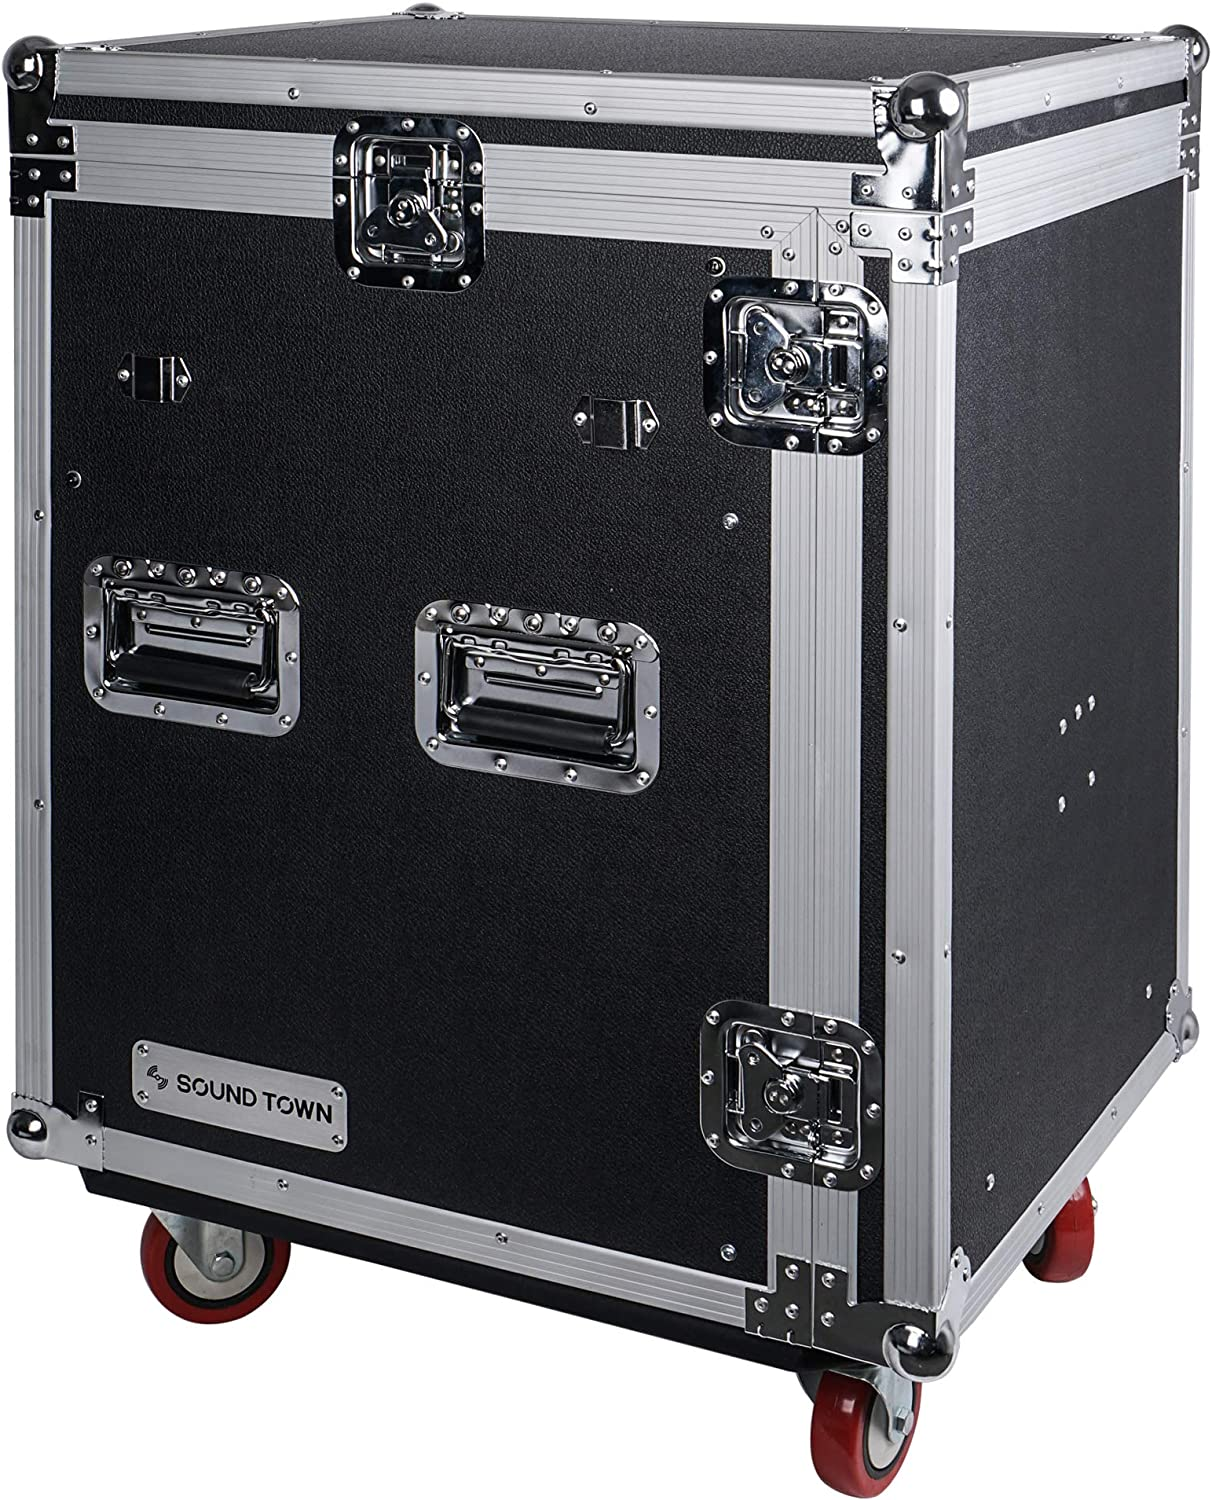 2 DJ Work Tables and Casters STMR-14UWT2 Sound Town 14U PA DJ Rack//Road ATA Case with 11U Slant Mixer Top 14-Space Size 20/'/' Rackable Depth